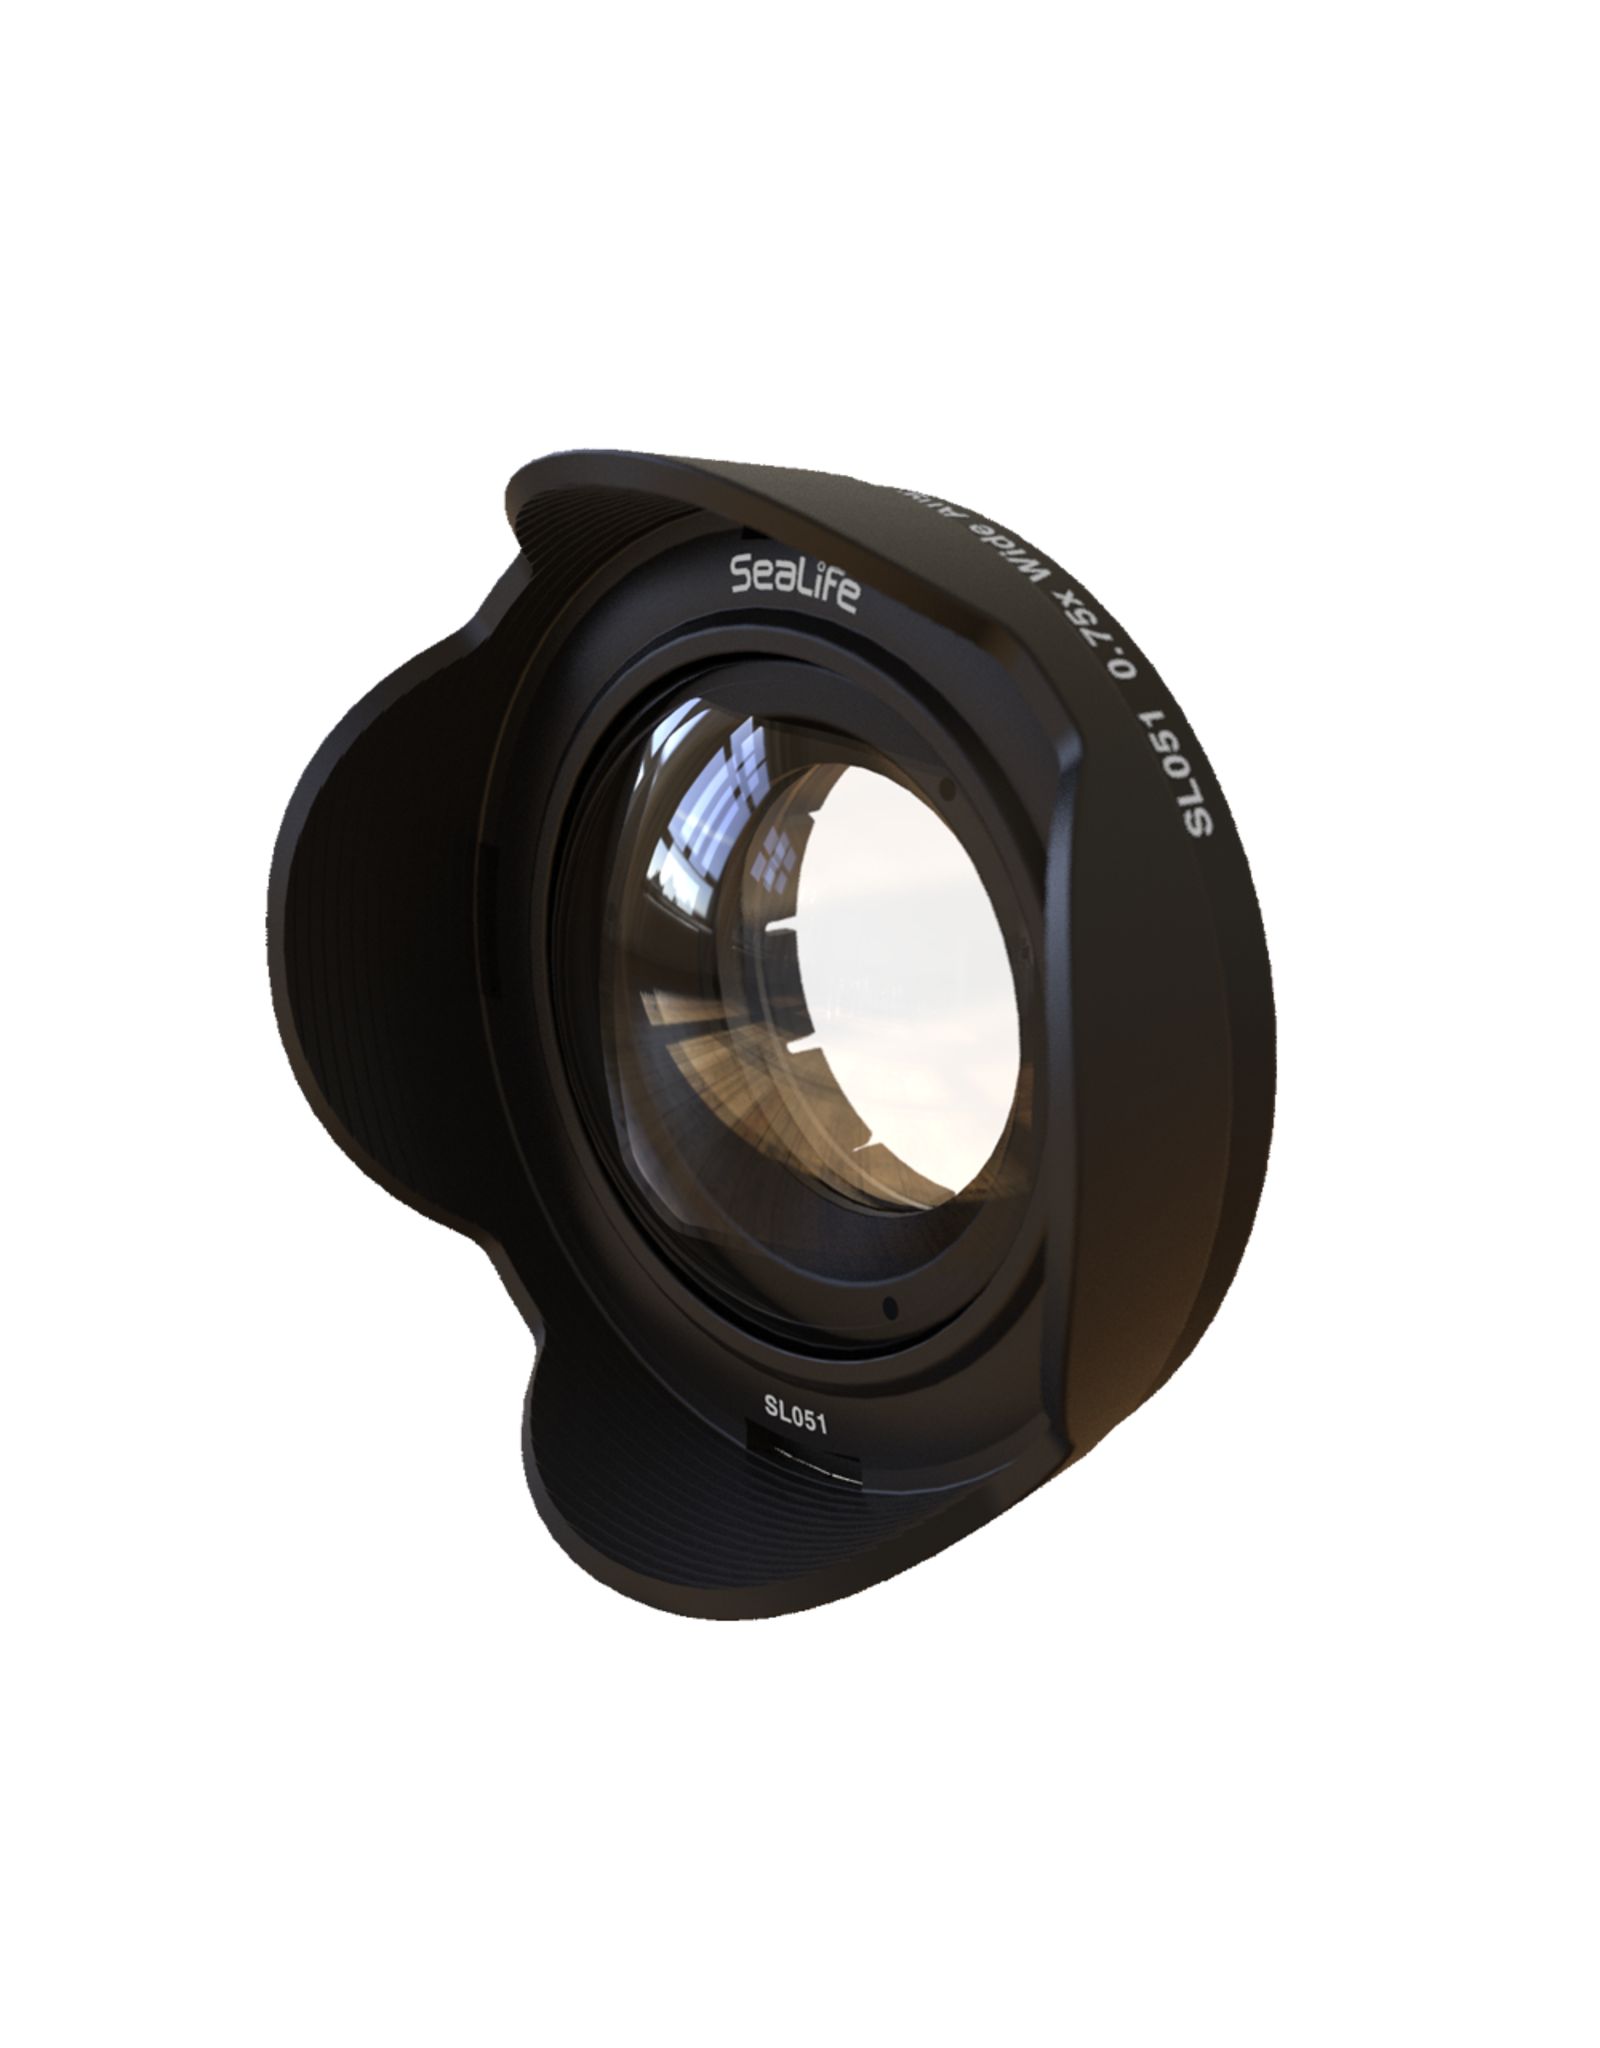 Sealife Sealife 0.75x Wide Angle Conversion Lens for DC-Series Cameras